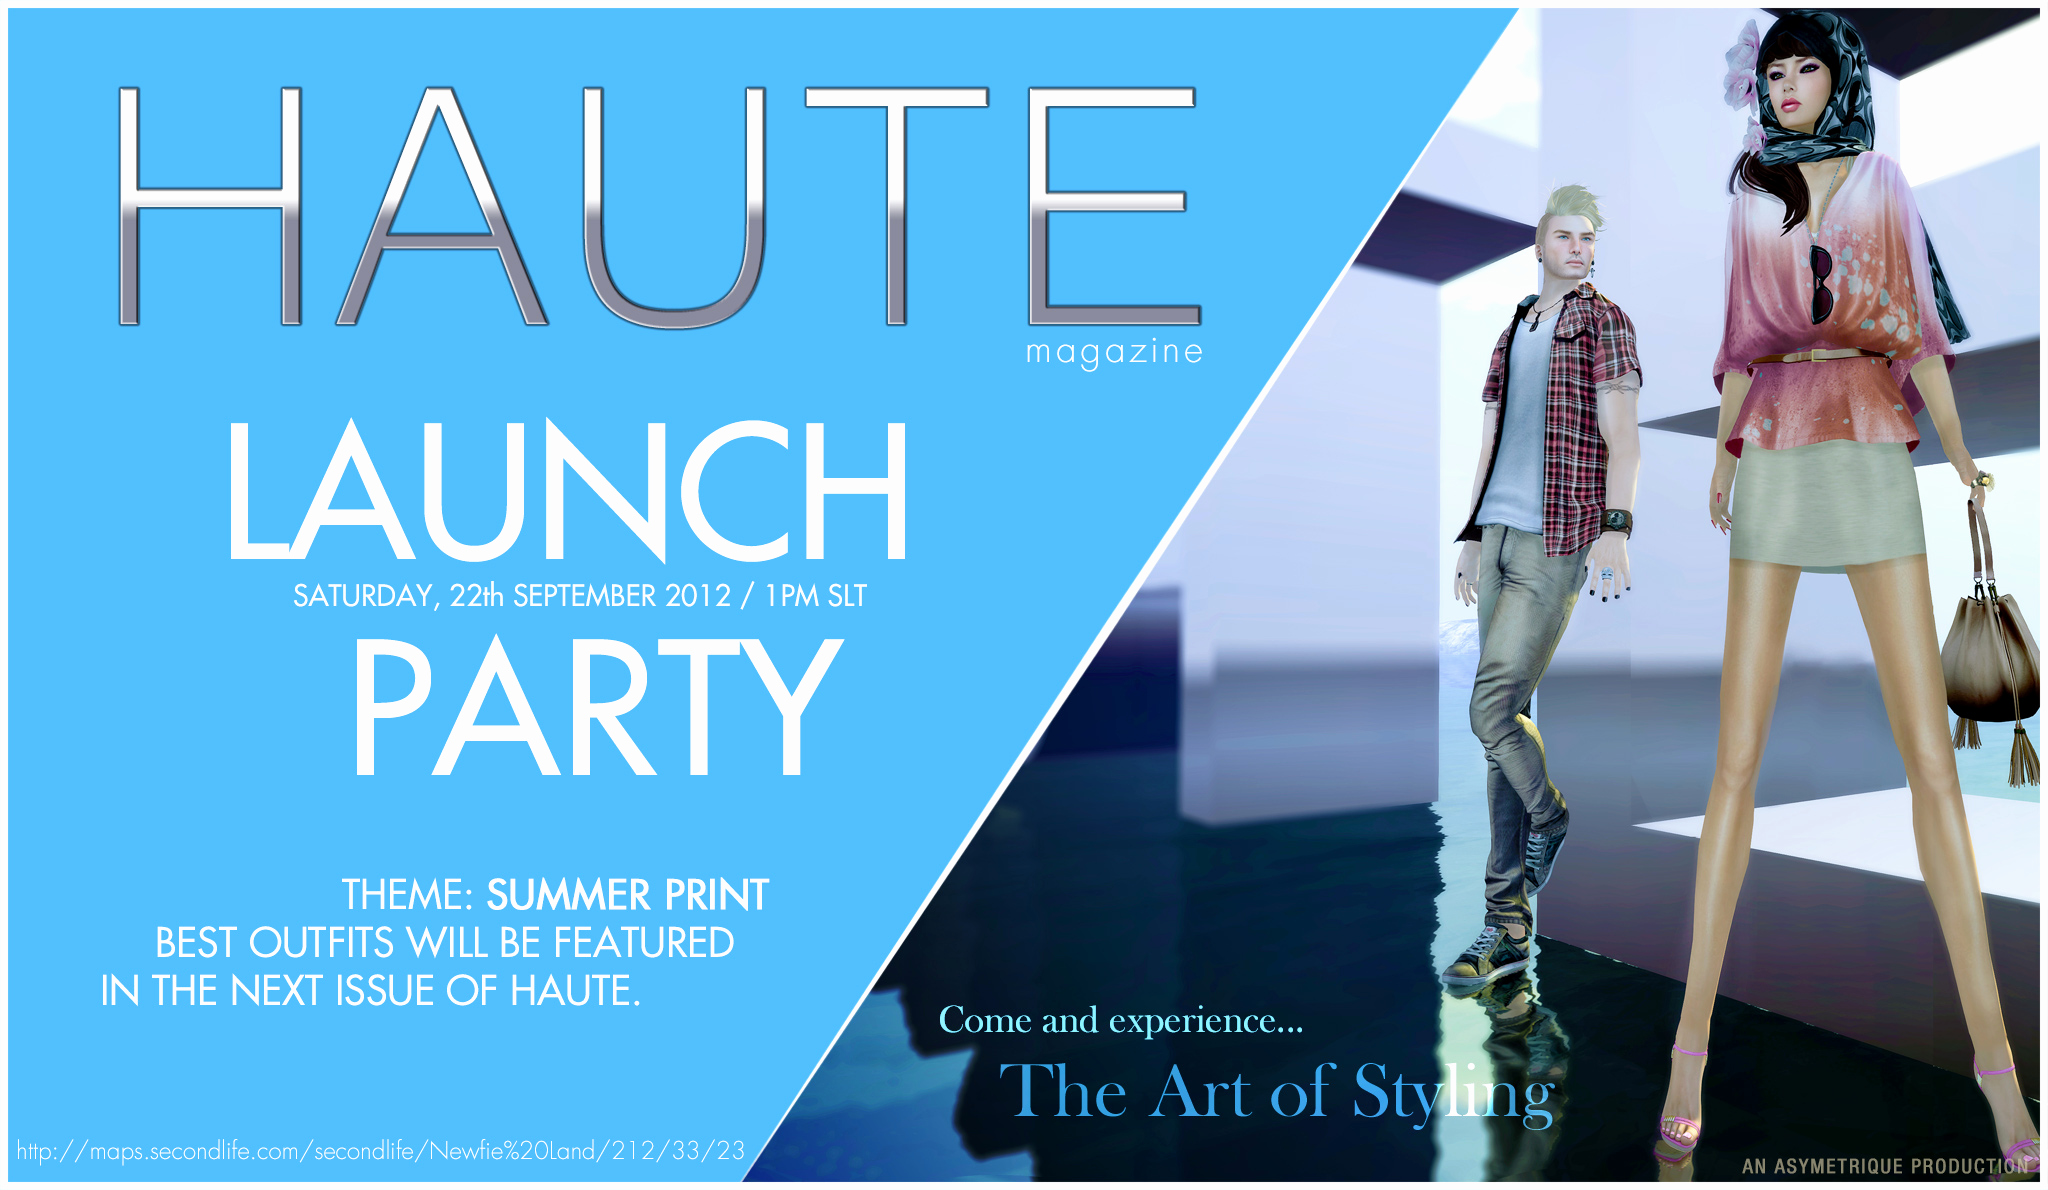 Book Launch Party Invitation Best Of Wording for Launch norwex Party Evite